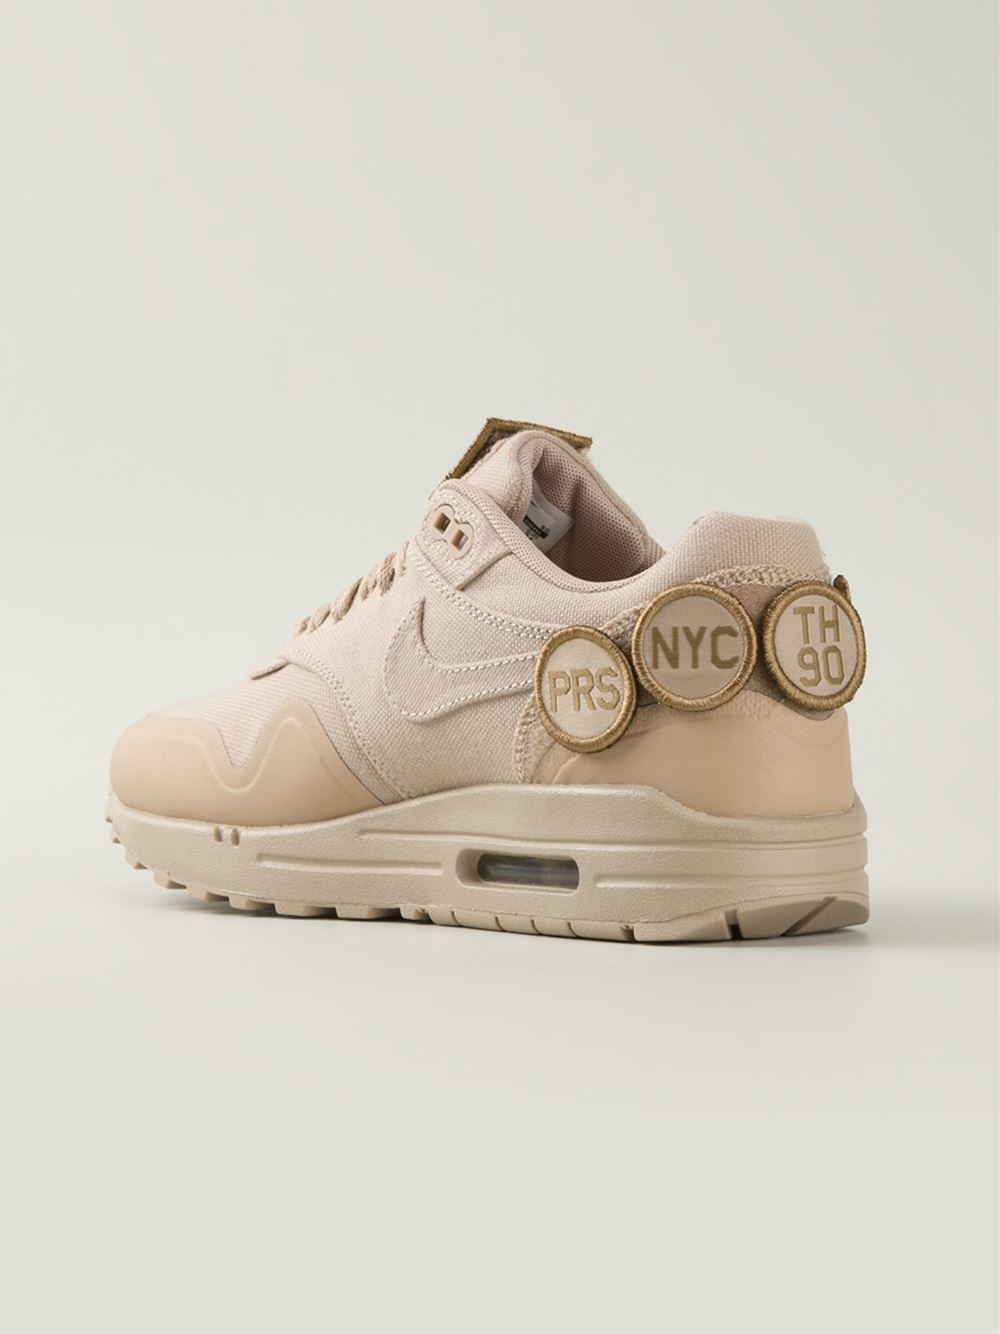 Lyst Natural Nike Max In 1' 'air Sneakers Men For rrqYd7w